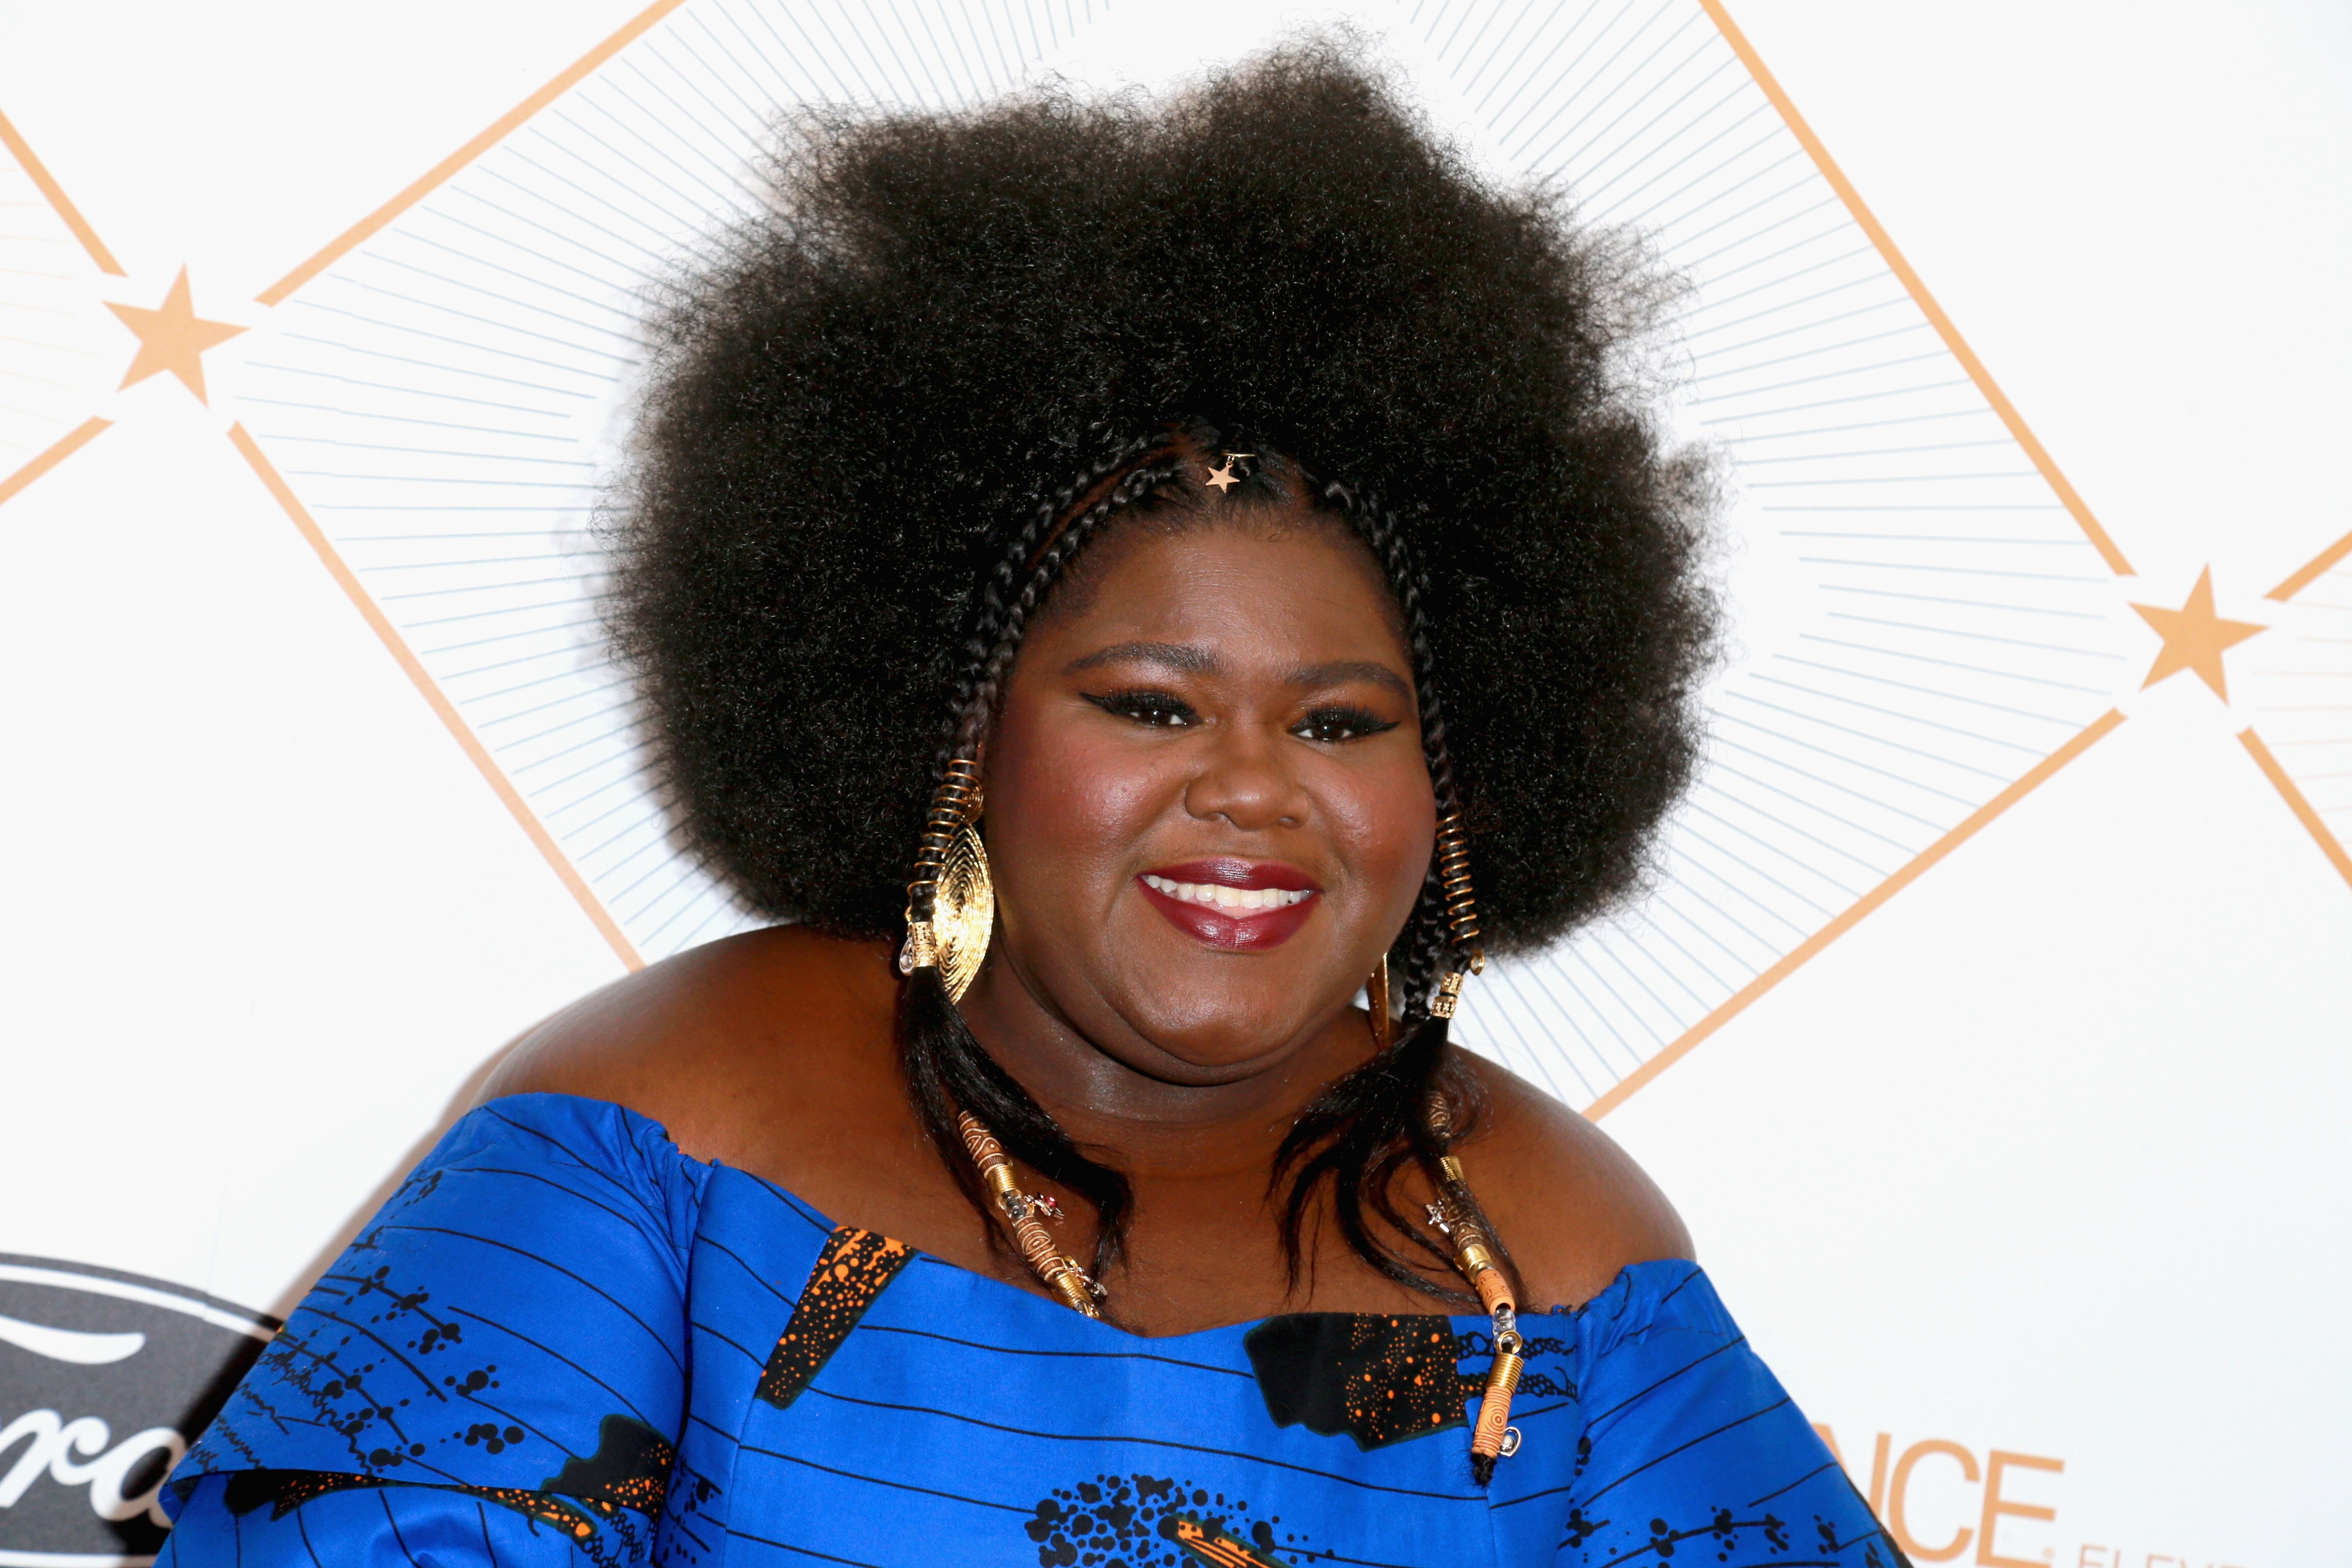 Gabourey 'Gabby' Sidibe at the 2018 Essence Black Women In Hollywood Oscars Luncheon in Los Angeles, California on March 1, 2018 | Photo: Getty Images